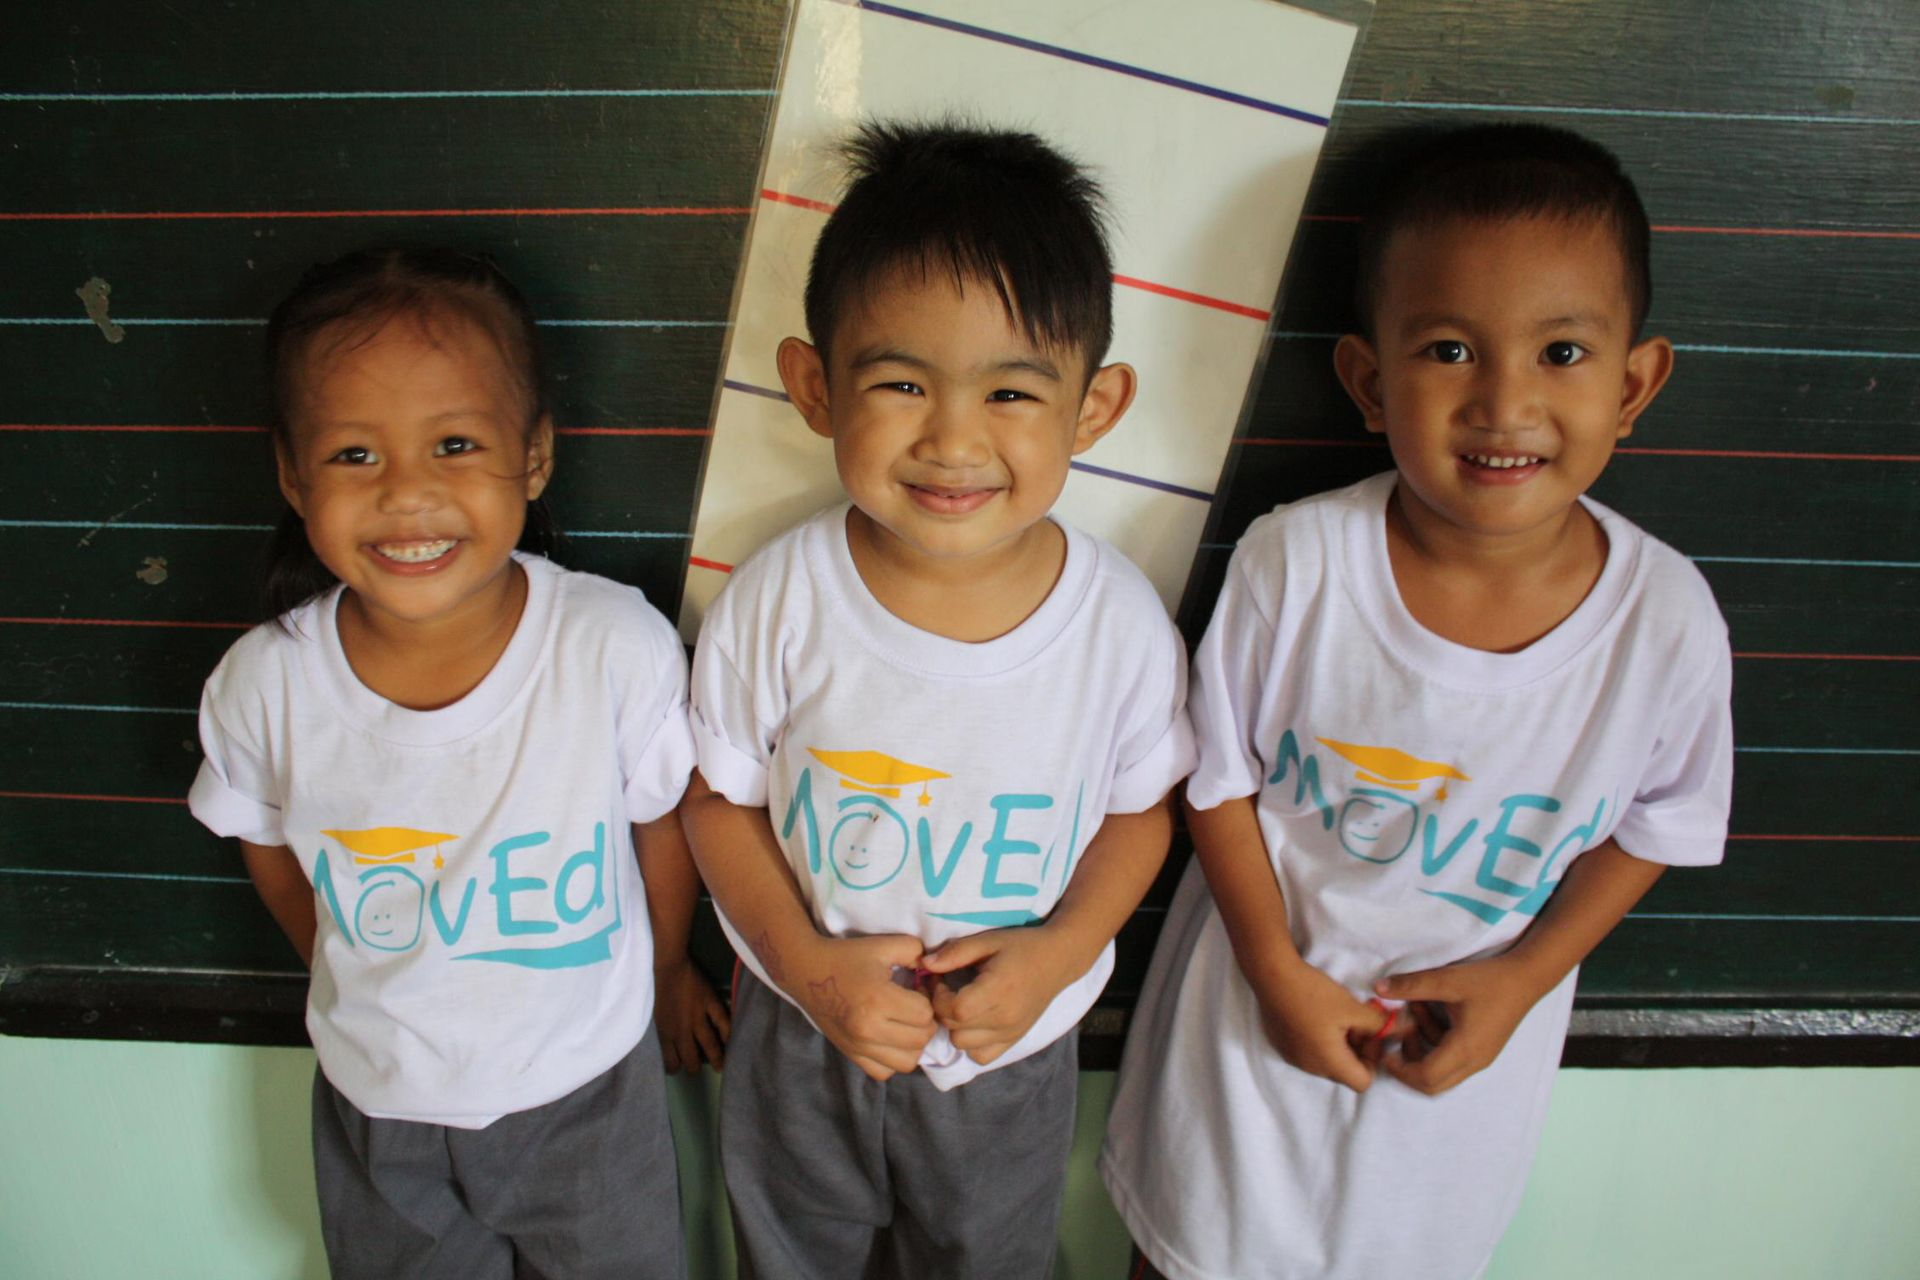 Founder of MovEd Foundation Alex Eduque Discusses Empowerment Through Education